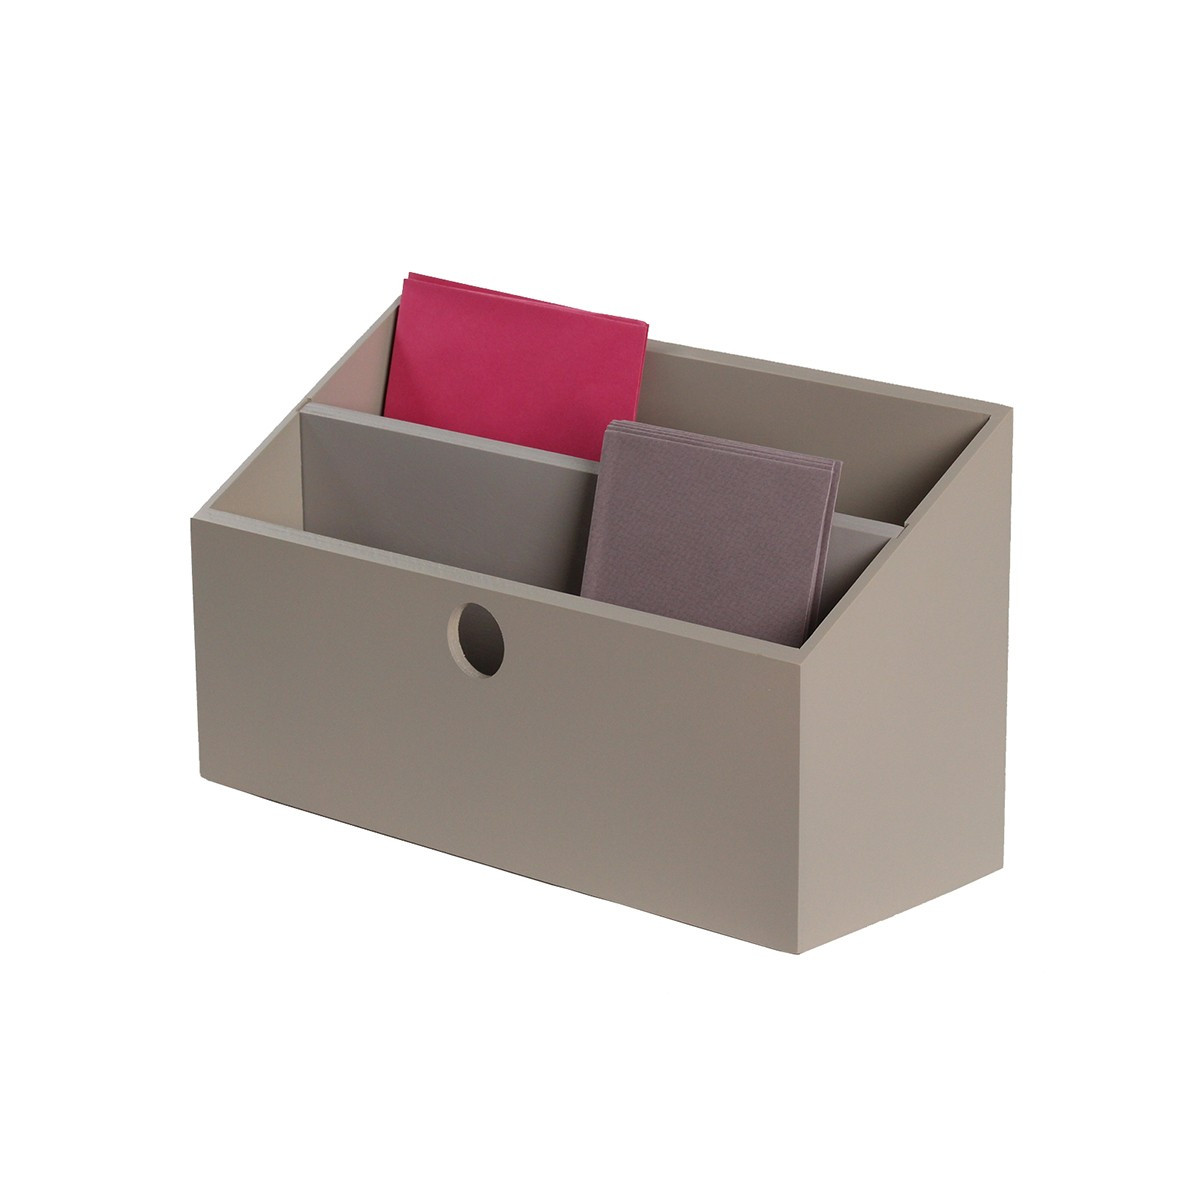 porte lettres bois gris taupe rangement courrier. Black Bedroom Furniture Sets. Home Design Ideas